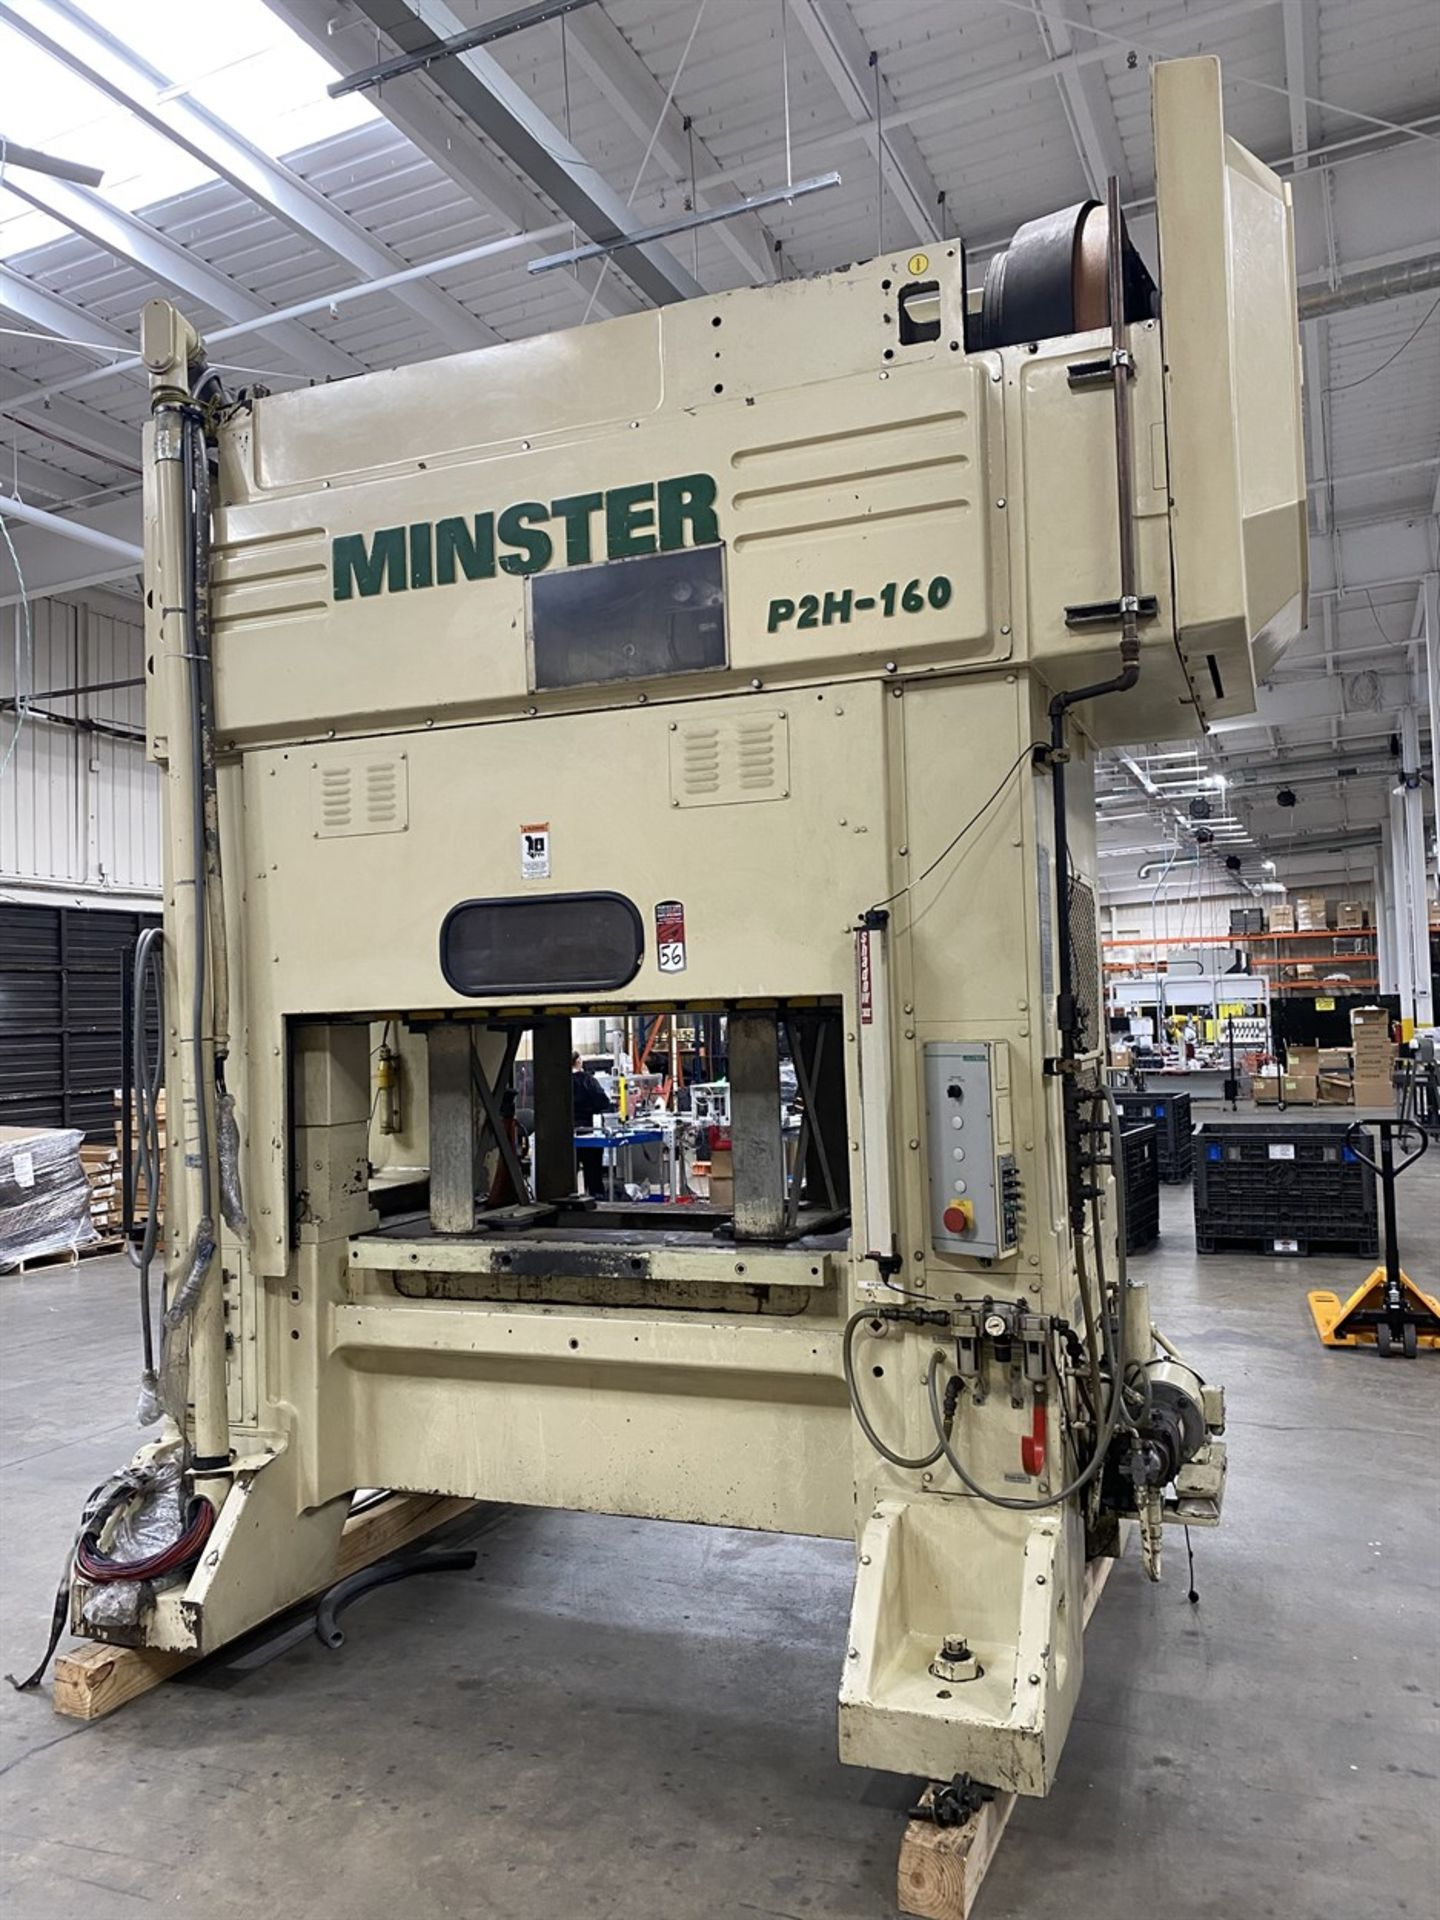 "Lot 56 - 2002 MINSTER P2H-160 Precision Straight Side Press, s/n 30126, 180 Ton Capacity, 63"" x 33.5"" Bed"